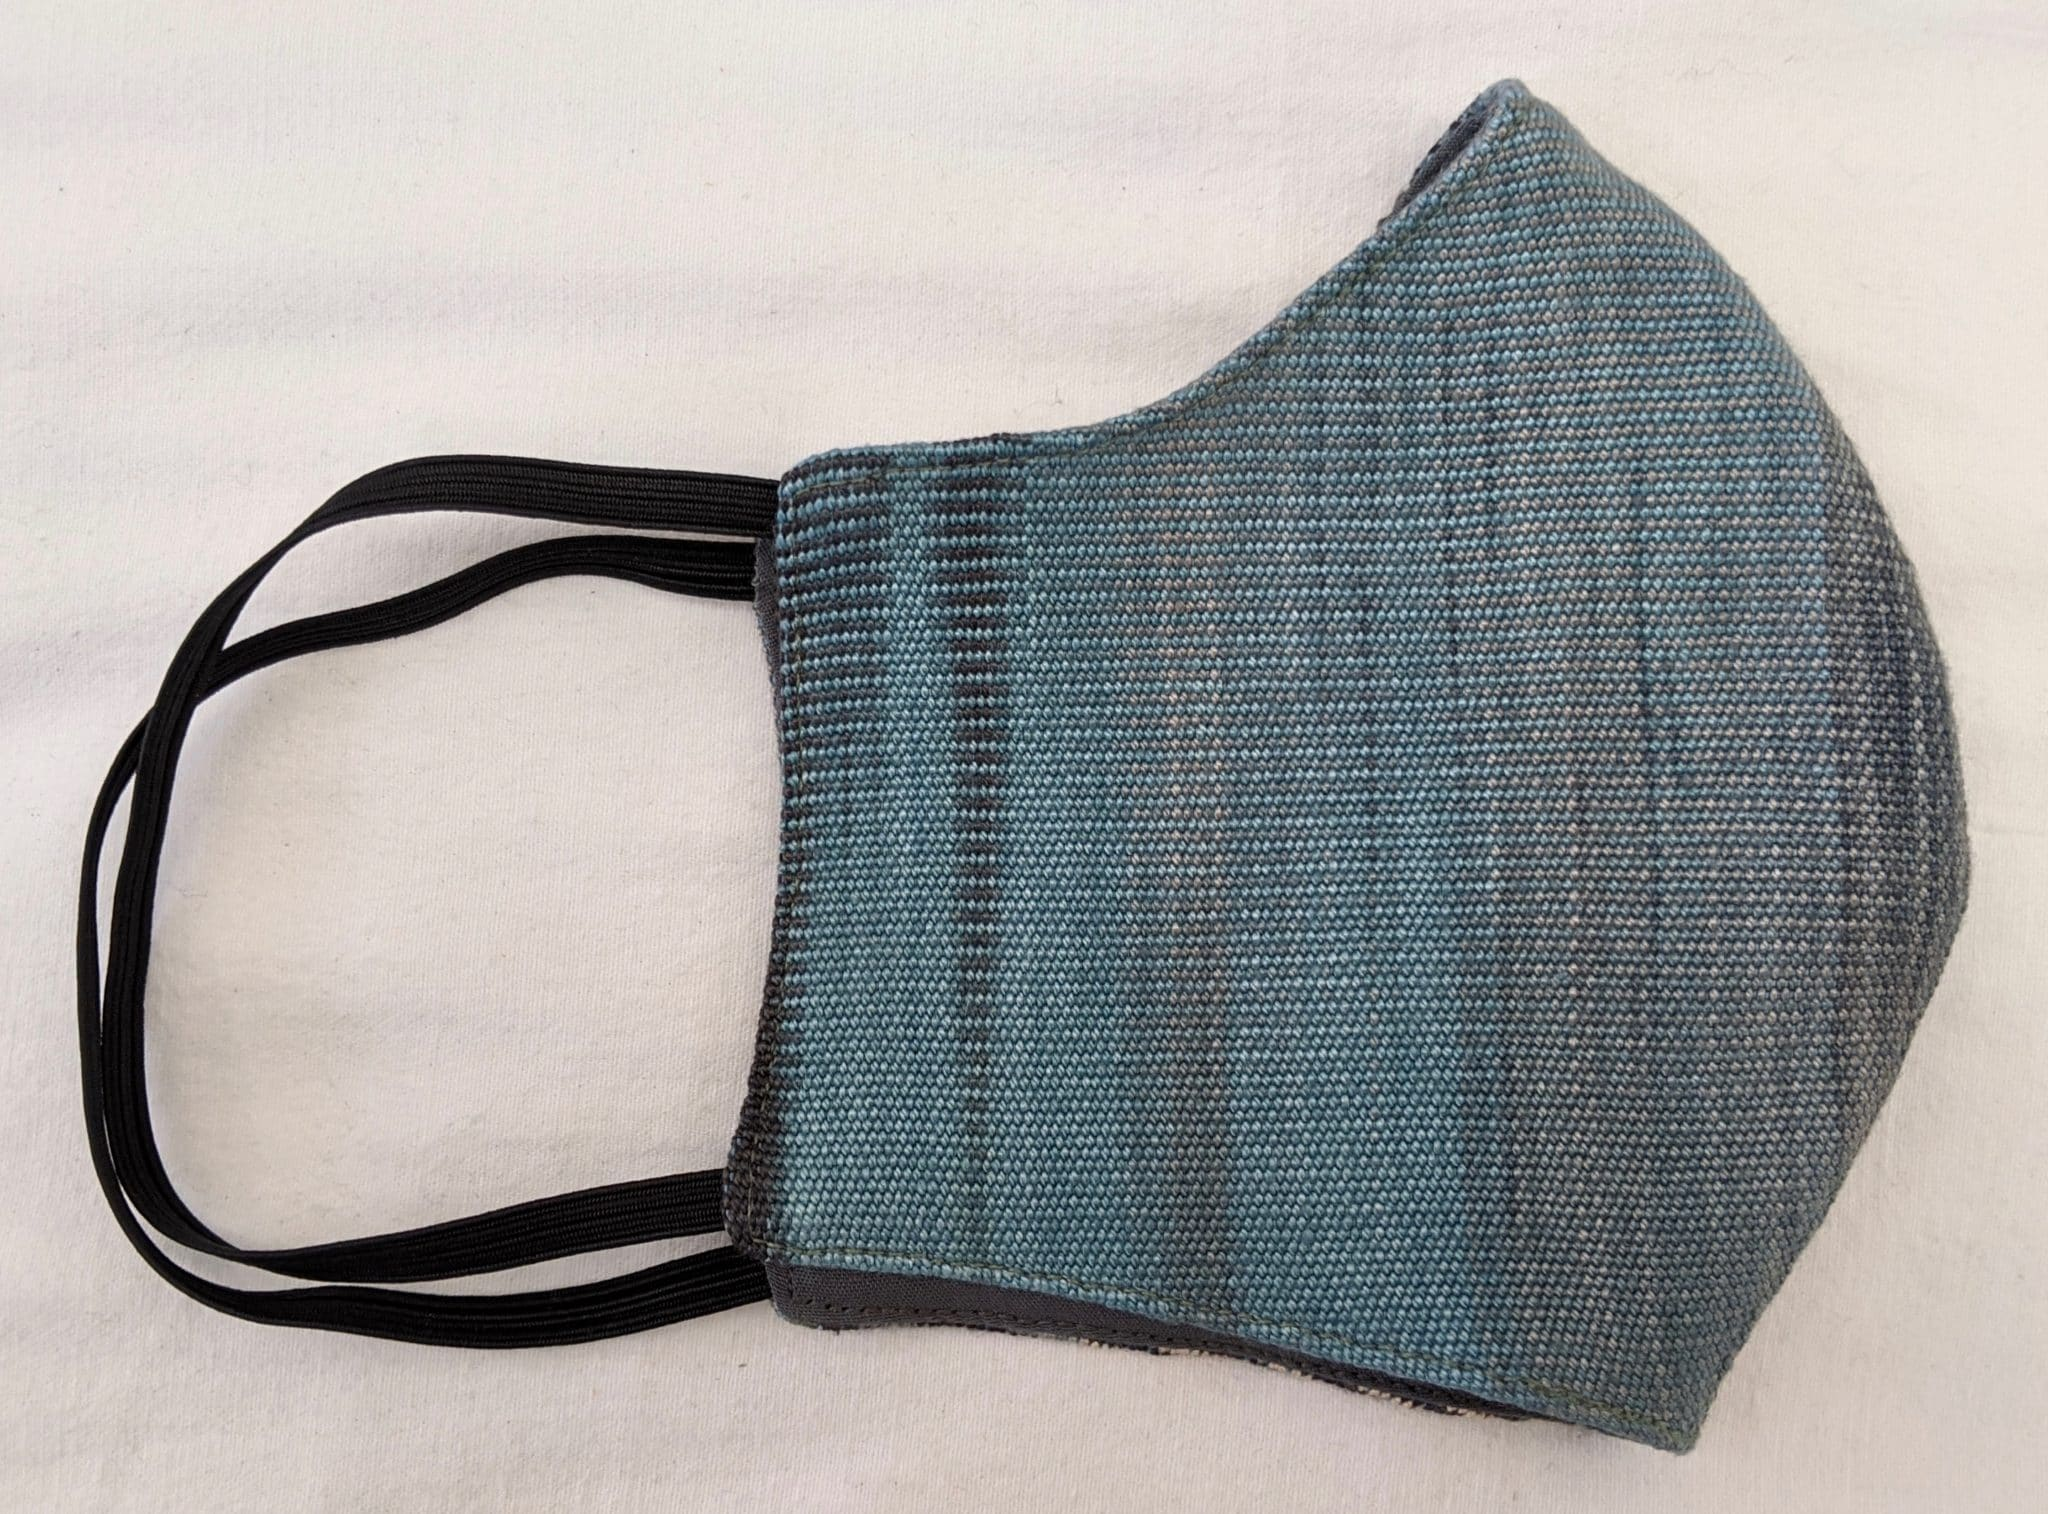 Handwoven Lightweight Bamboo Face Mask with Elastic Behind Ears - Denim (Blue, Black, Cream Gray)